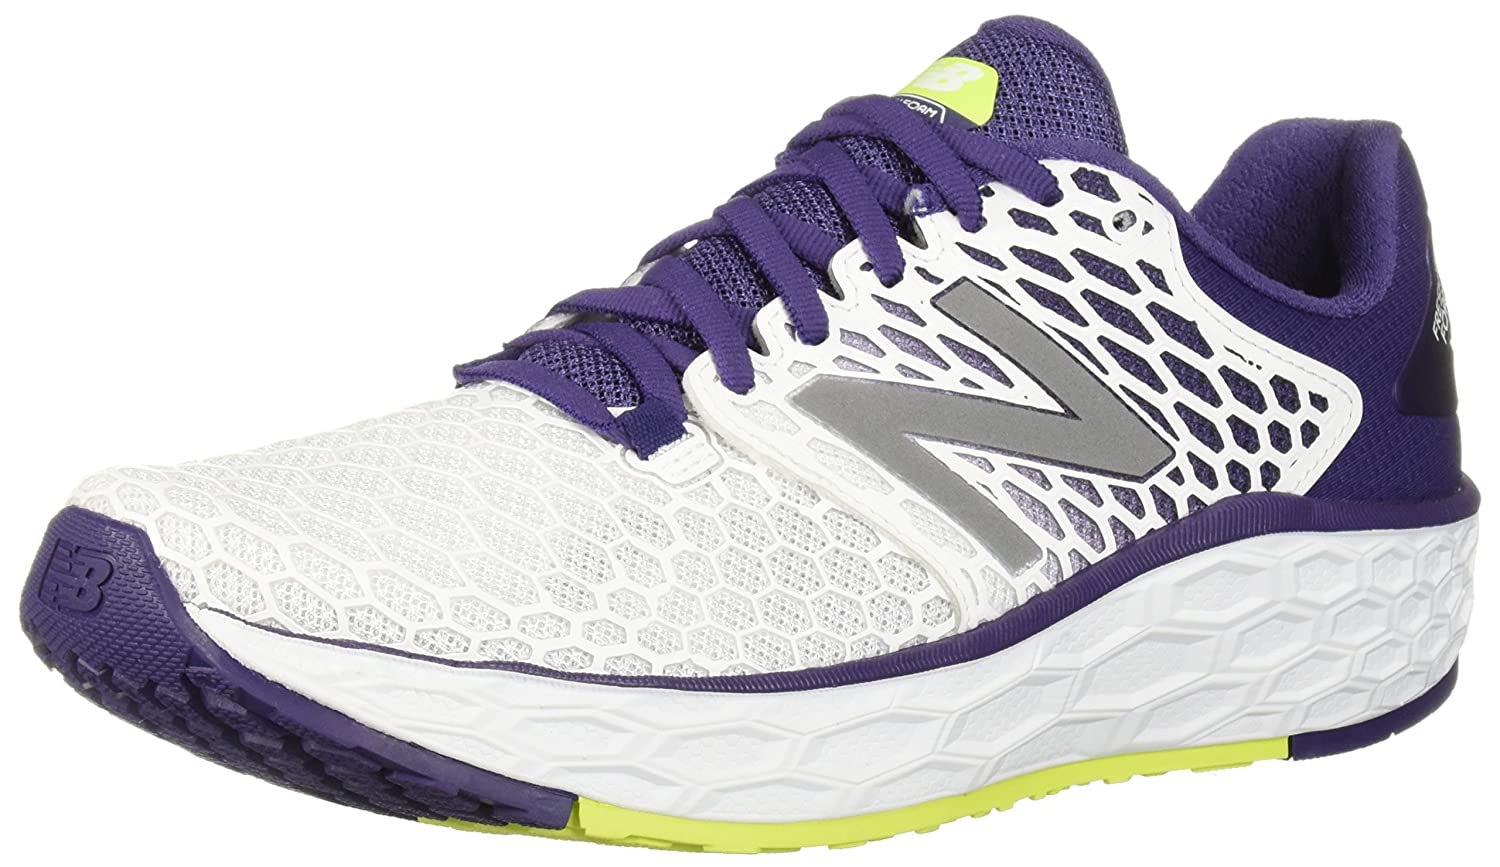 New Balance Women's Vongo V3 Fresh Foam Running Shoe B075R7PSJY 11 W US|White/Purple